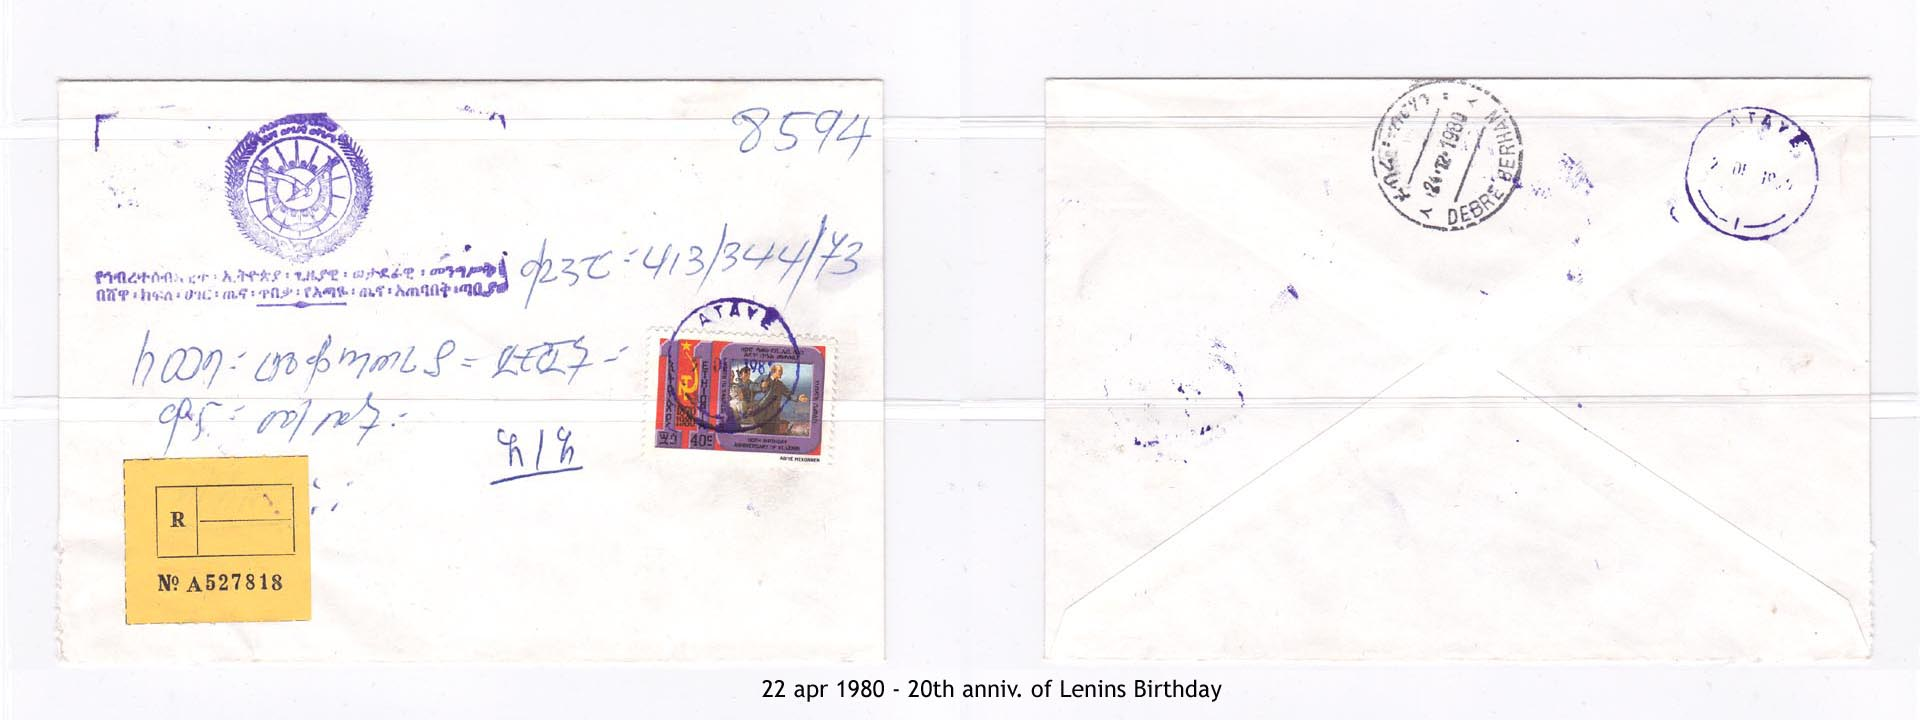 19800422 - 20th anniv. of Lenins Birthday z